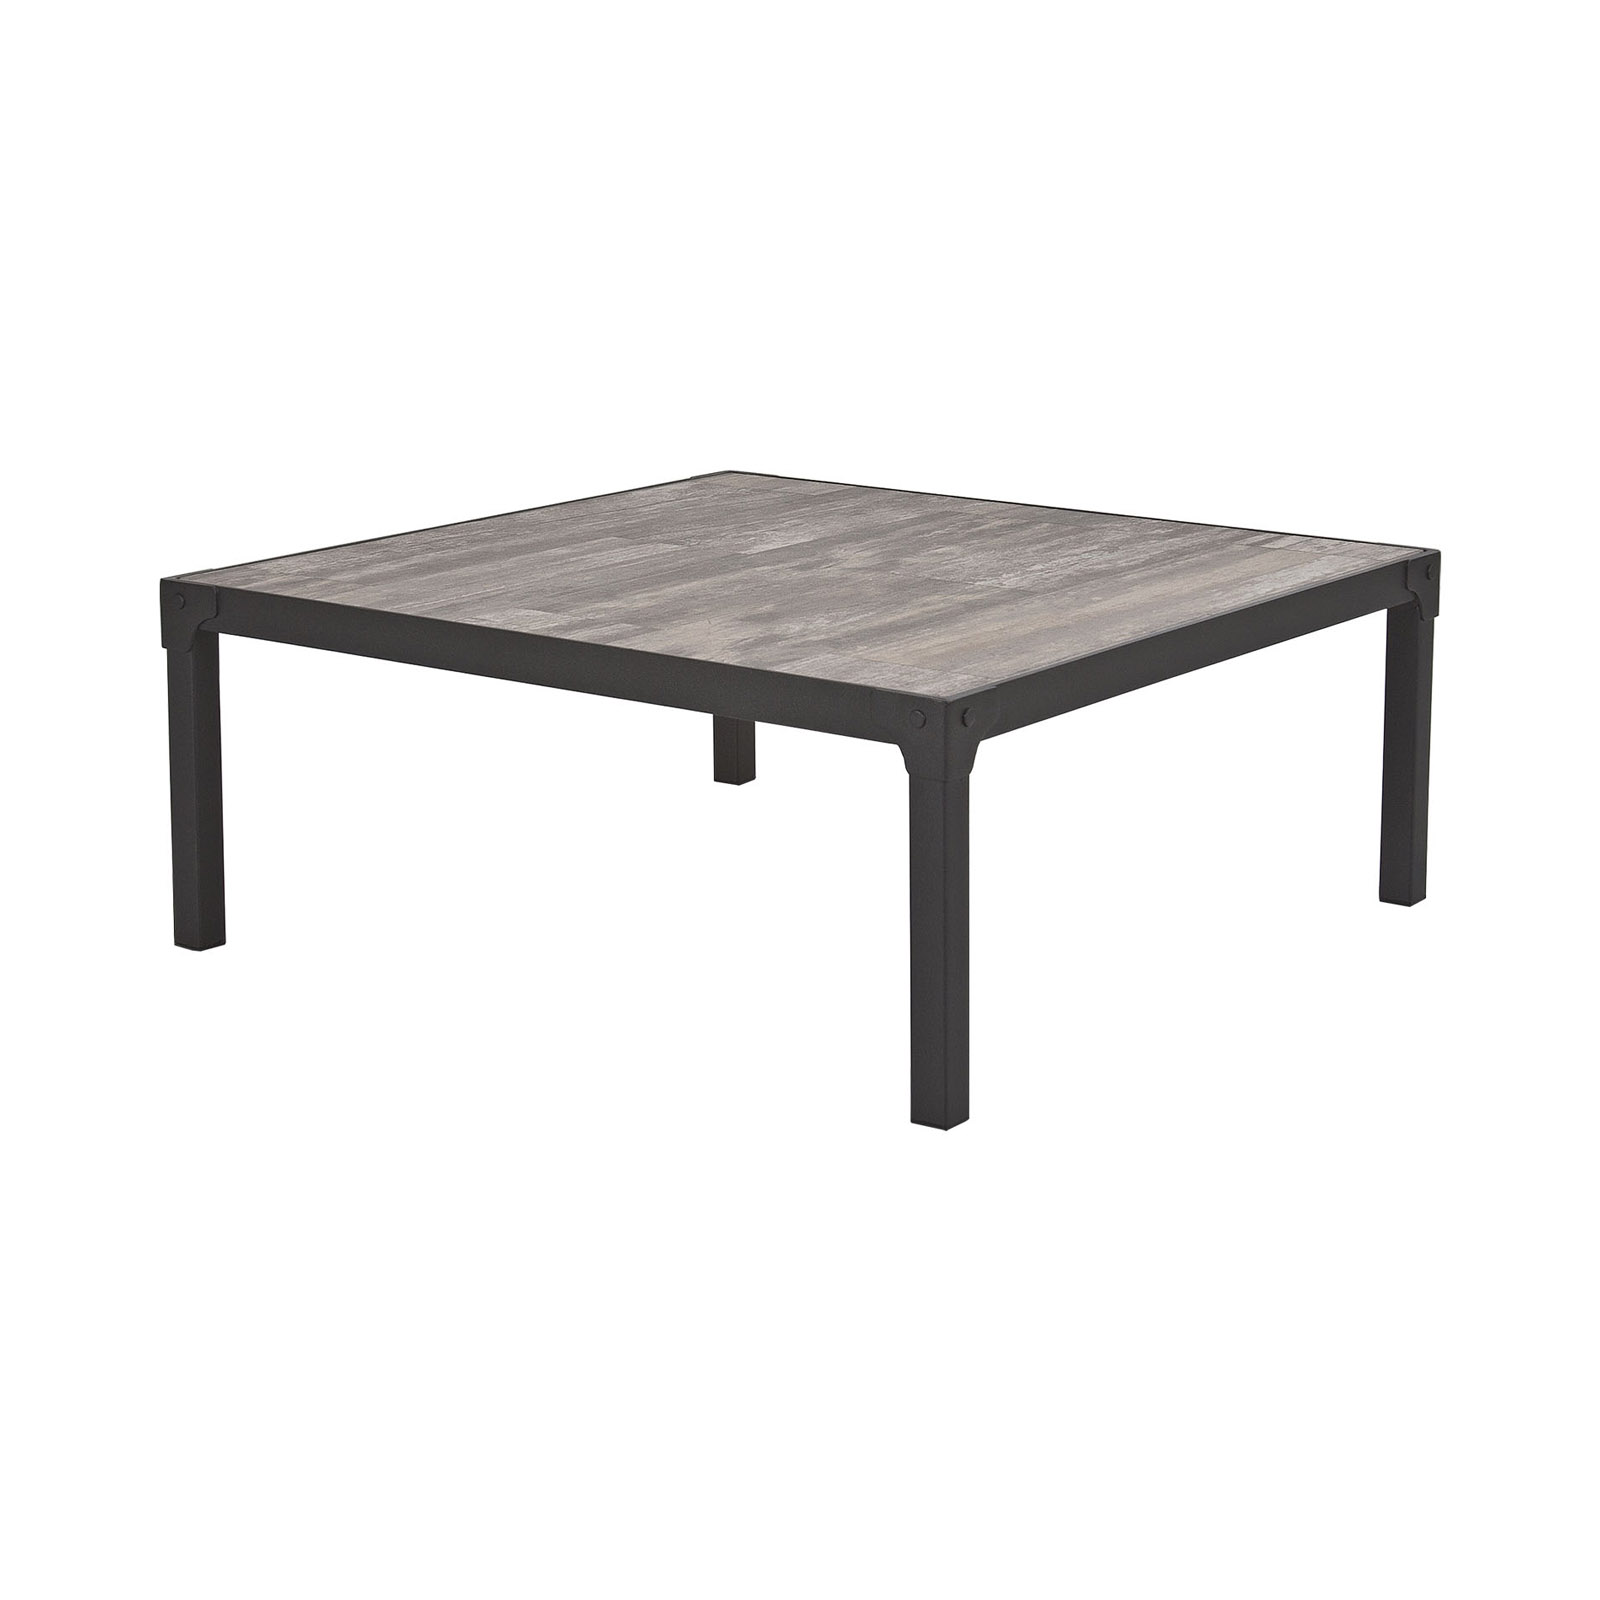 Sectional End Table copy.jpg